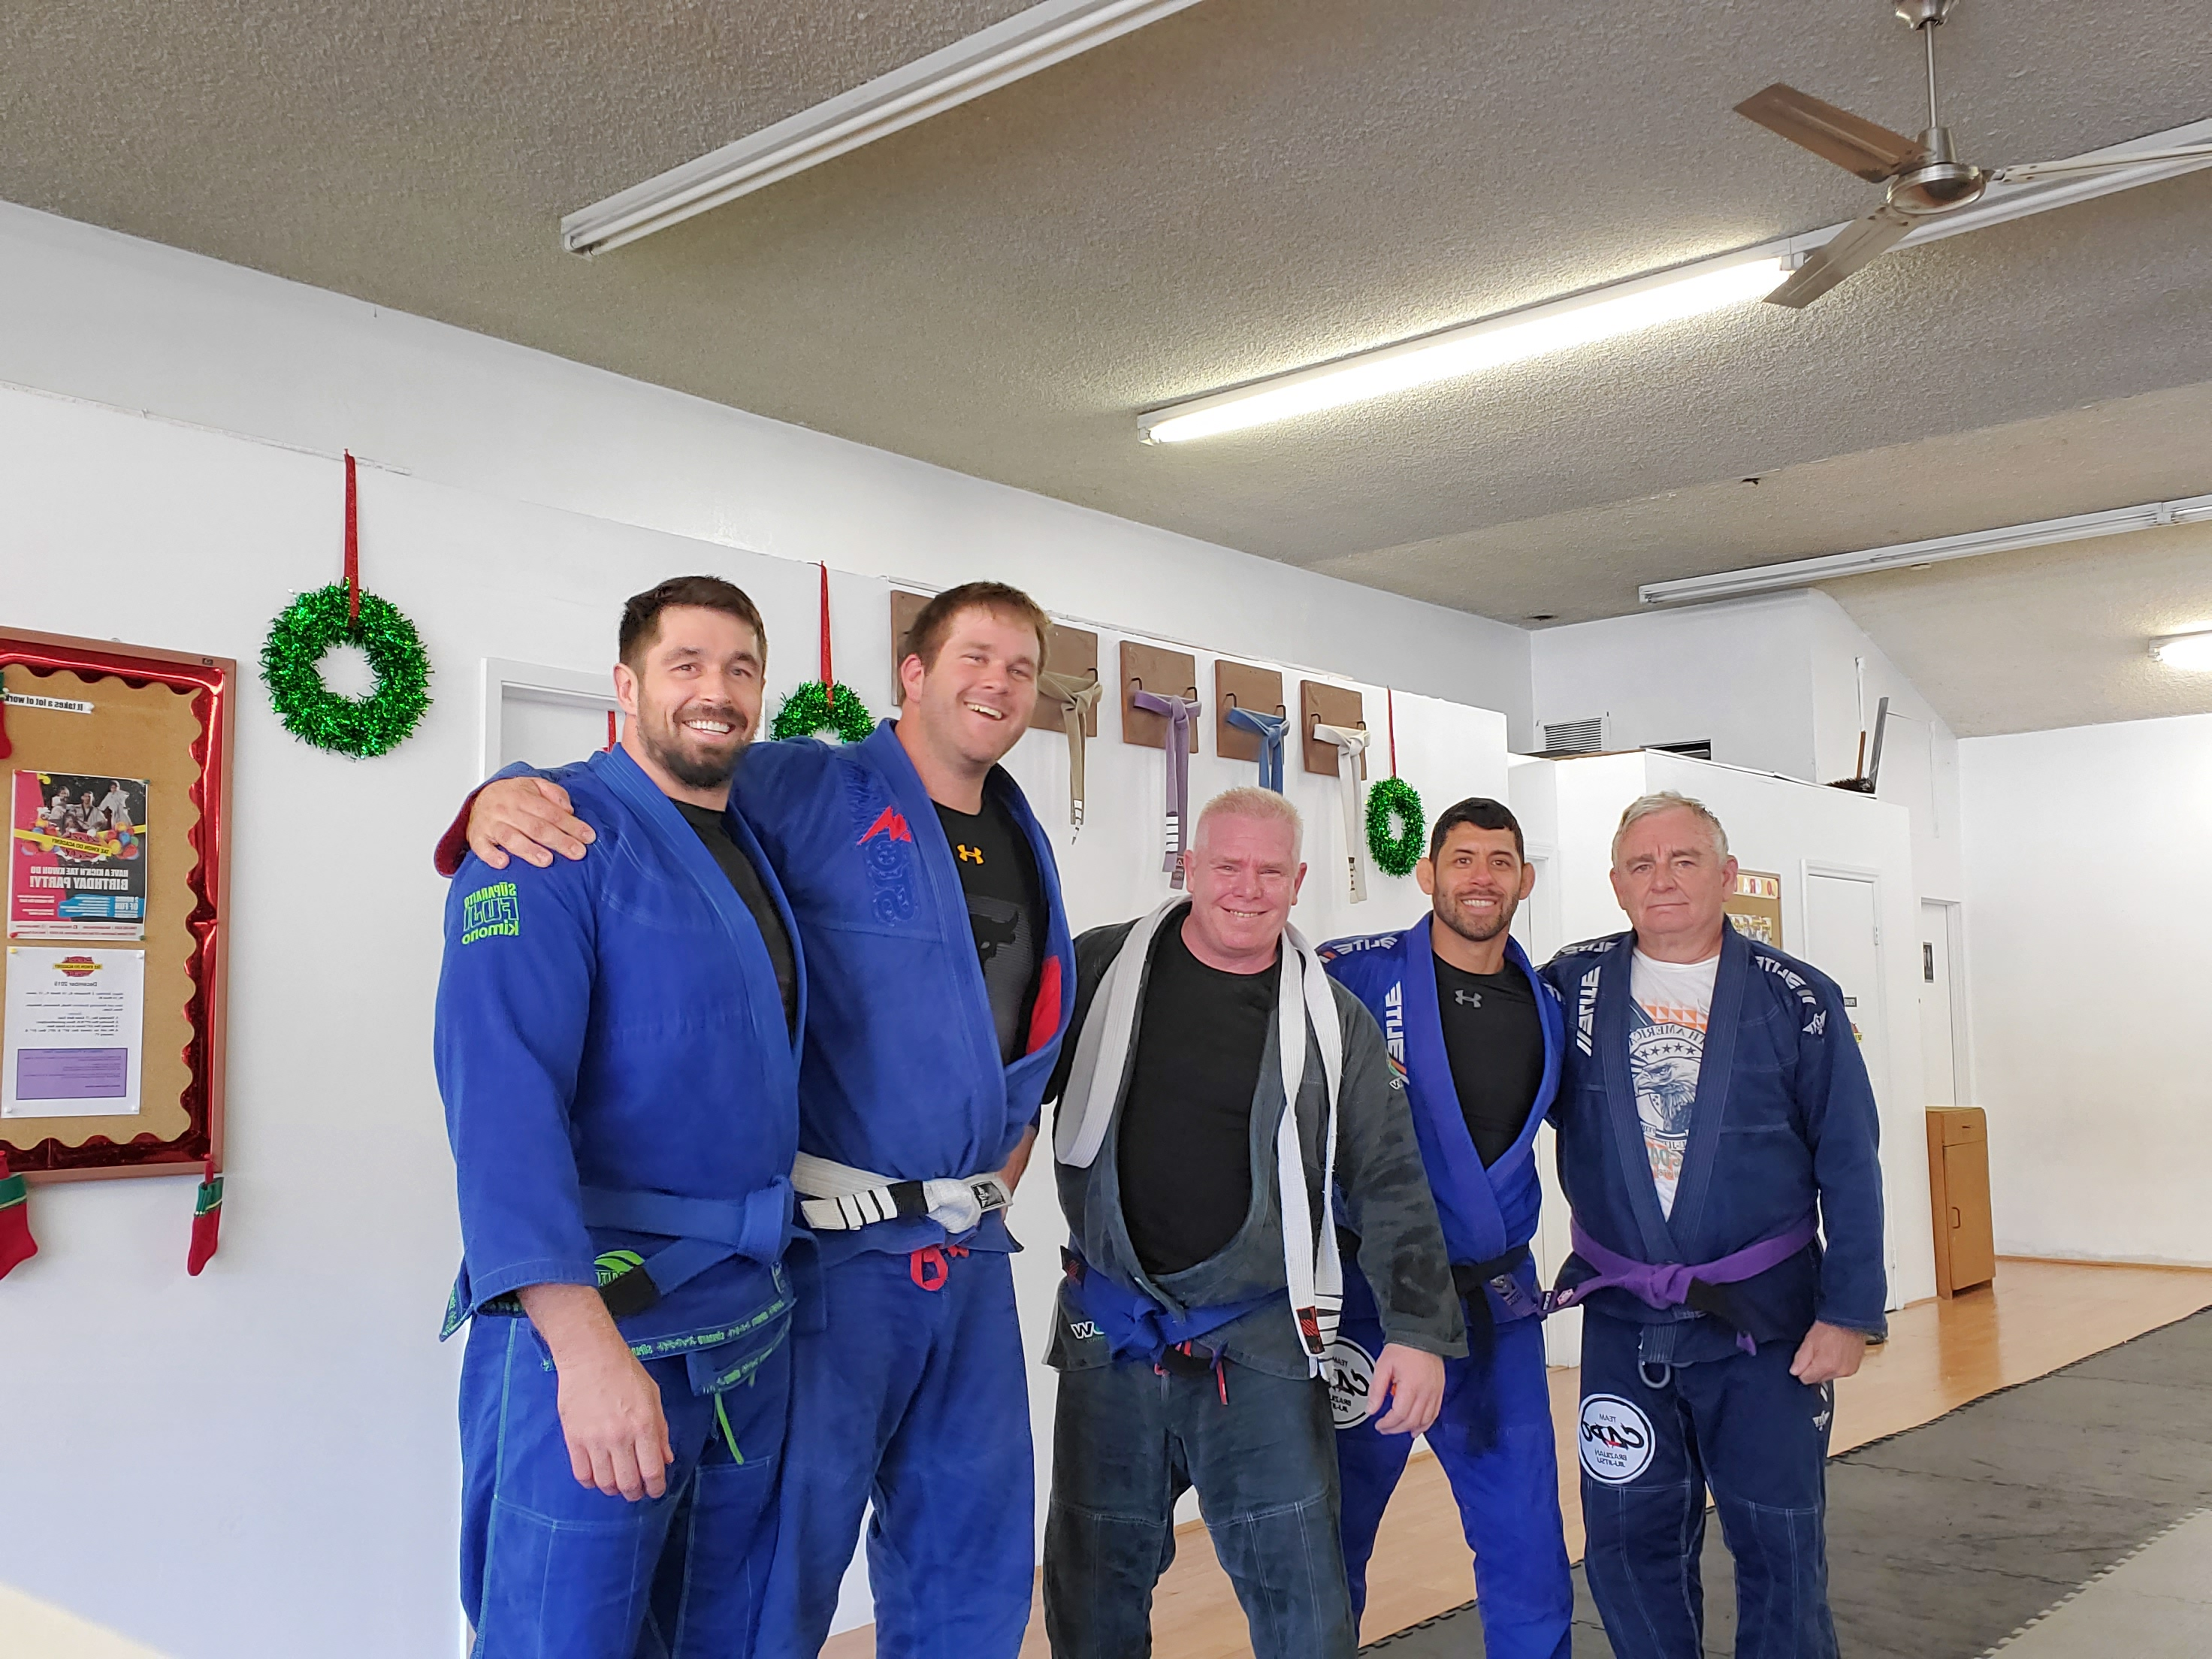 Congrats John on your Blue Belt!